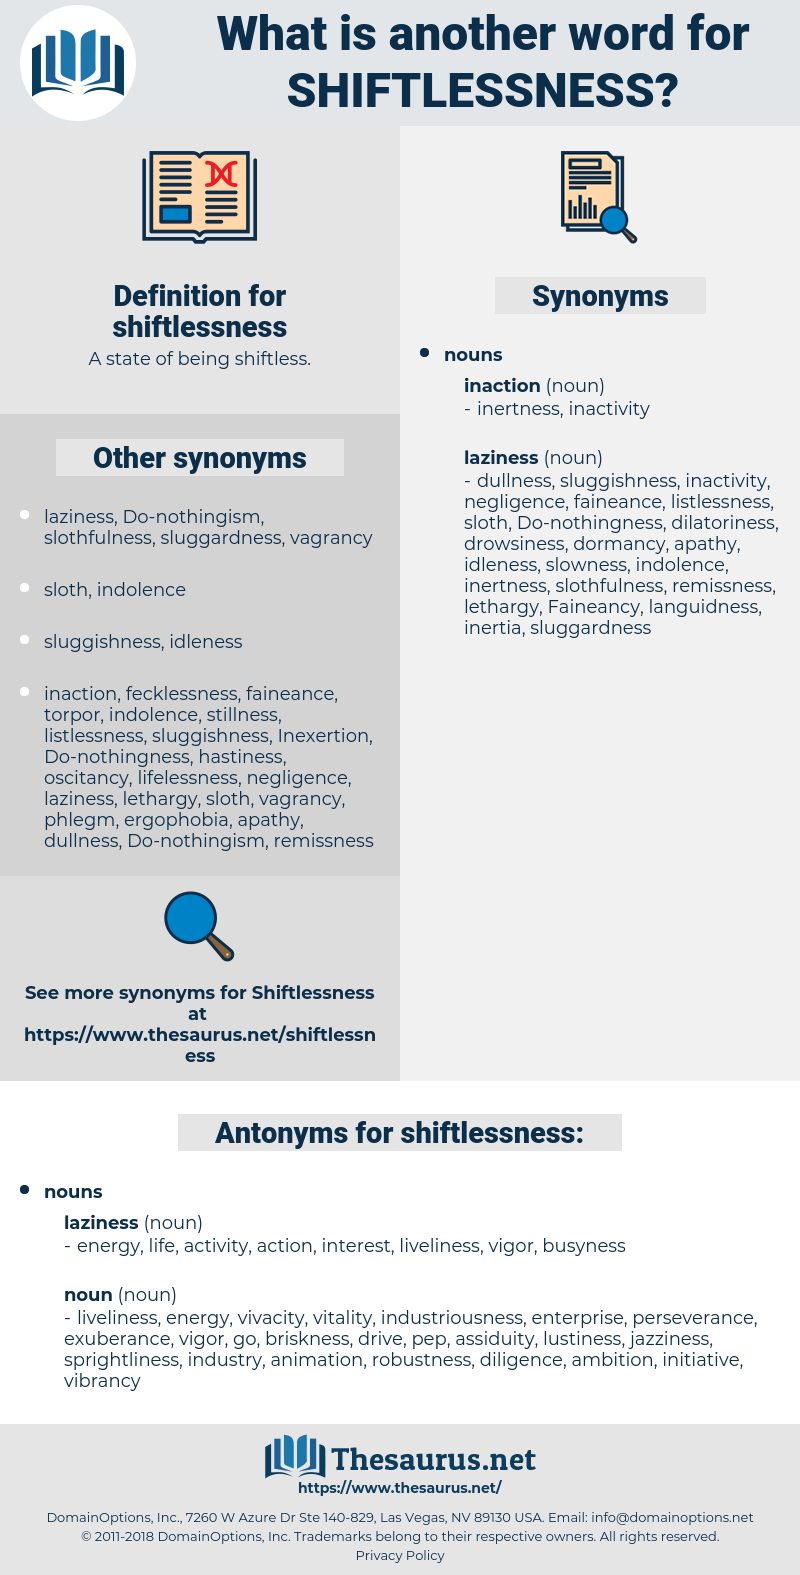 shiftlessness, synonym shiftlessness, another word for shiftlessness, words like shiftlessness, thesaurus shiftlessness